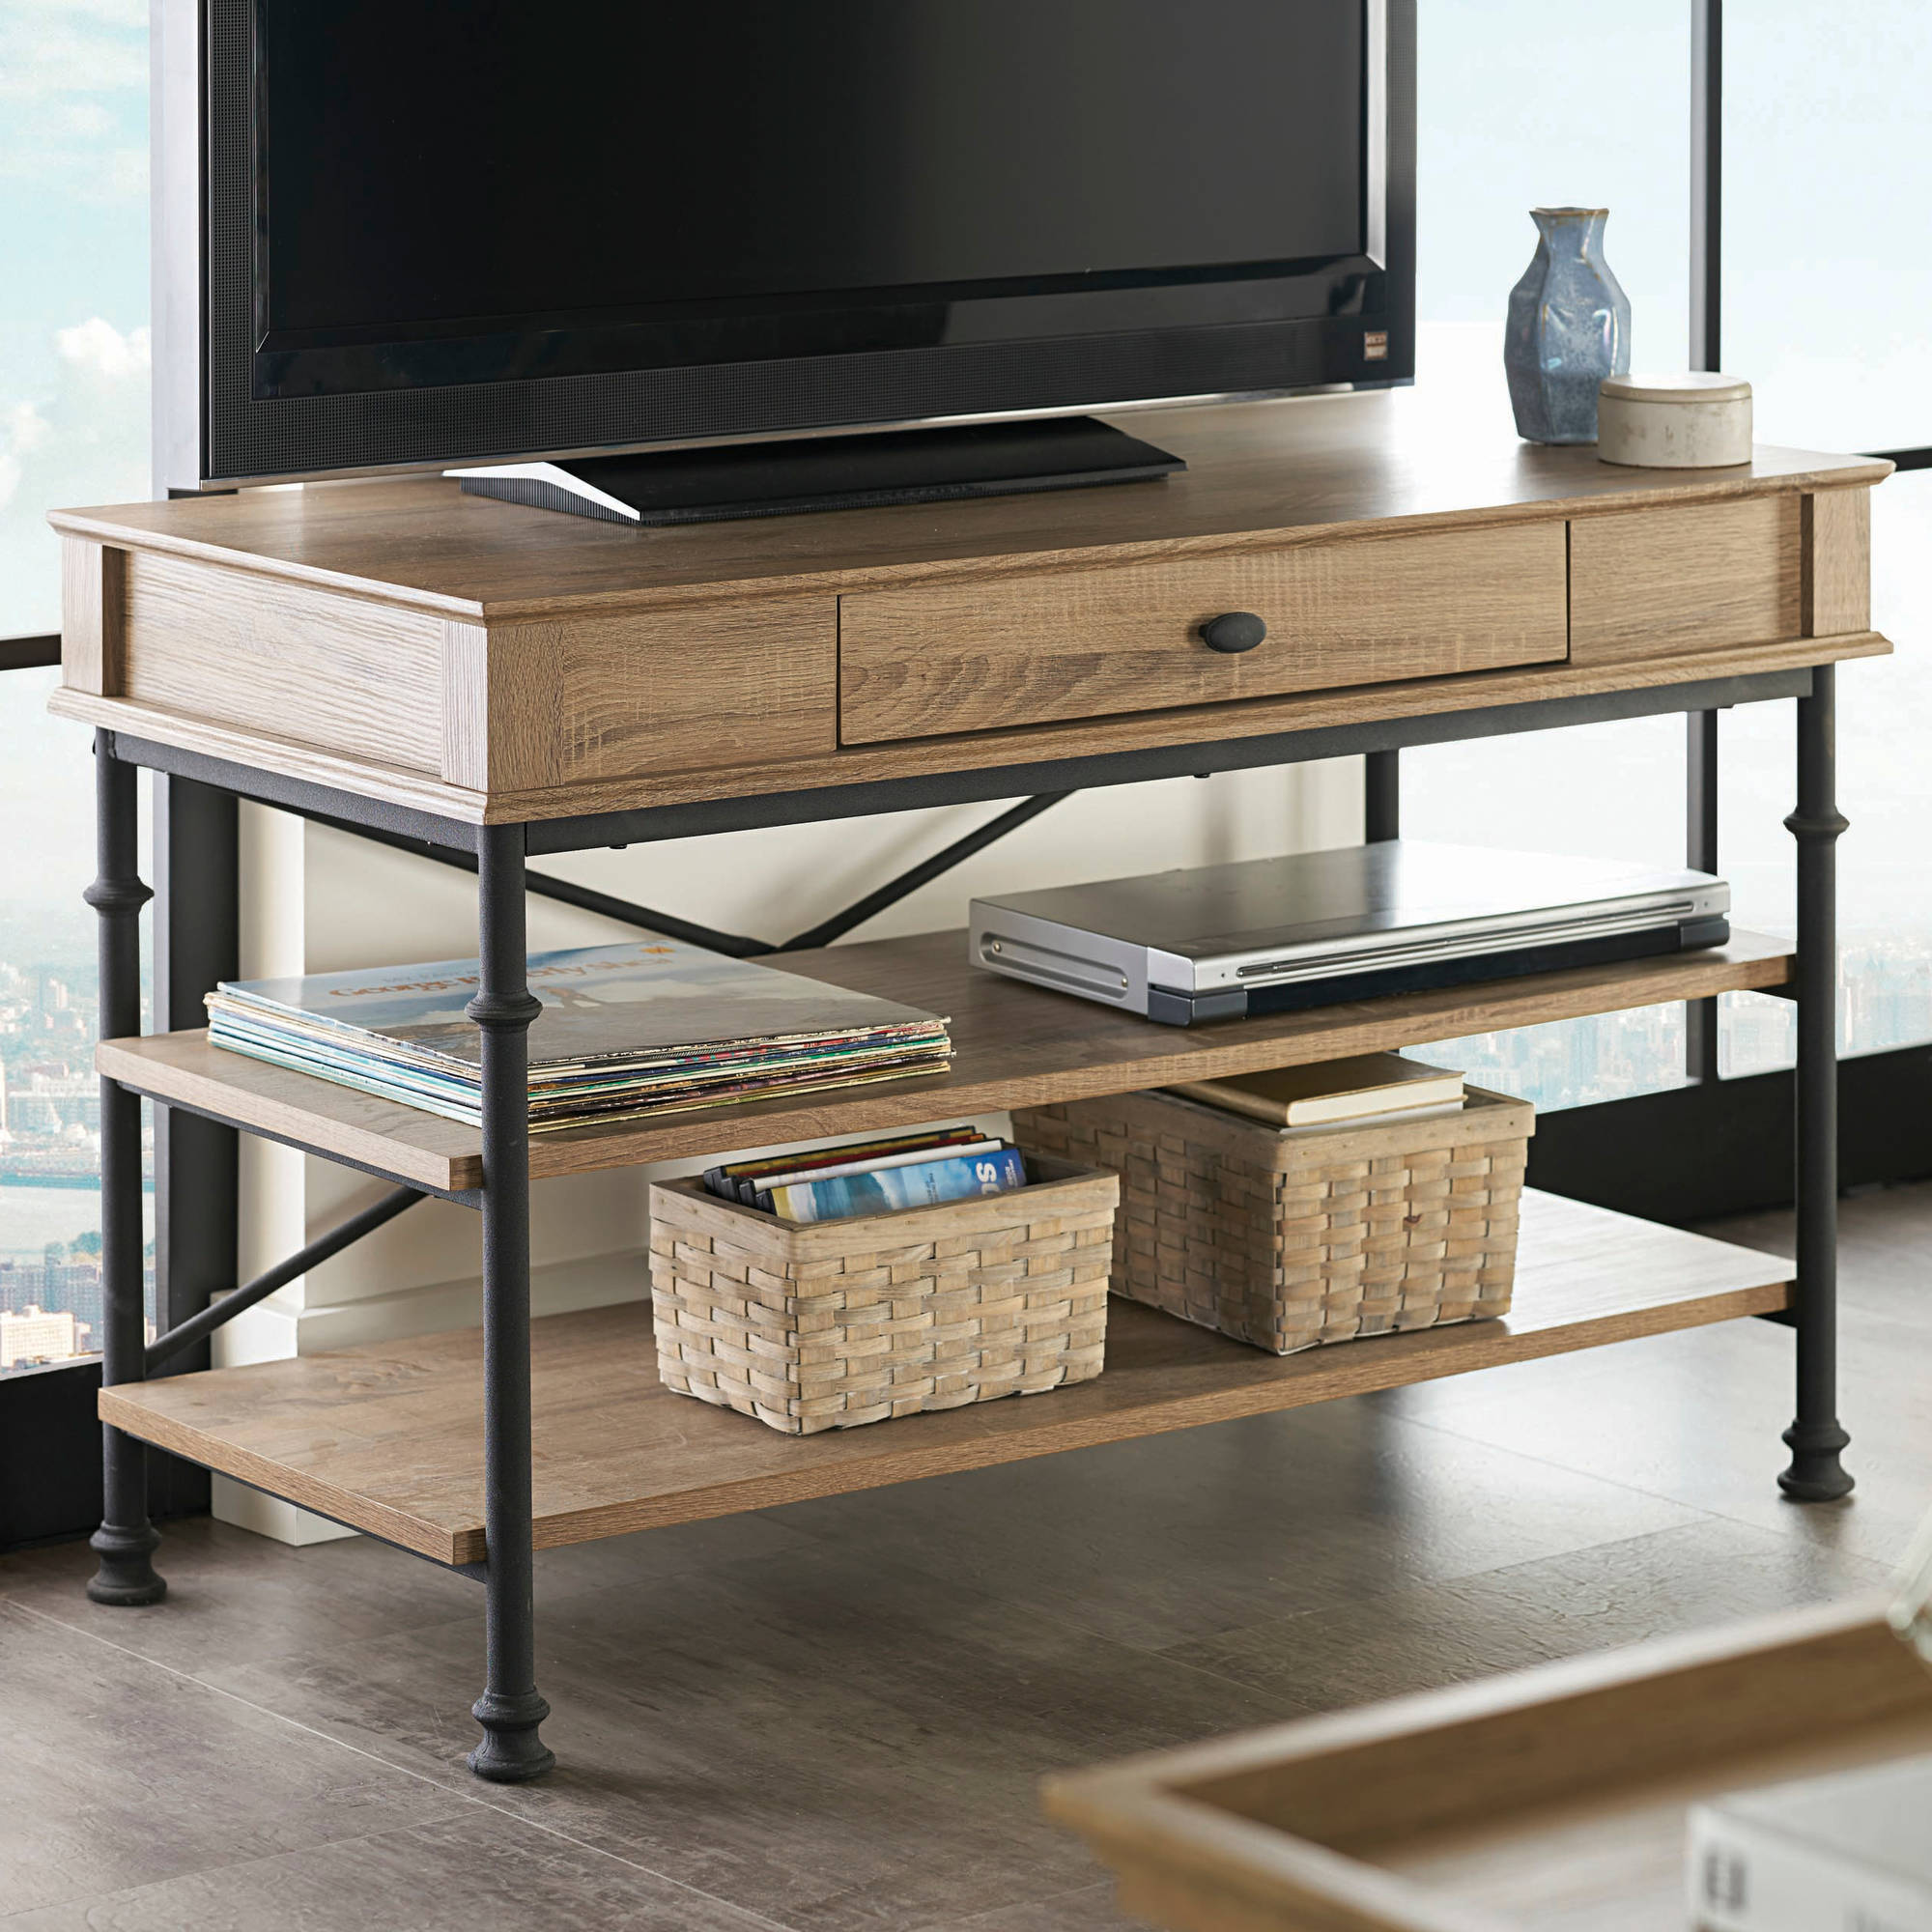 Better Homes Gardens River Crest TV Stand for TVs up to 42\